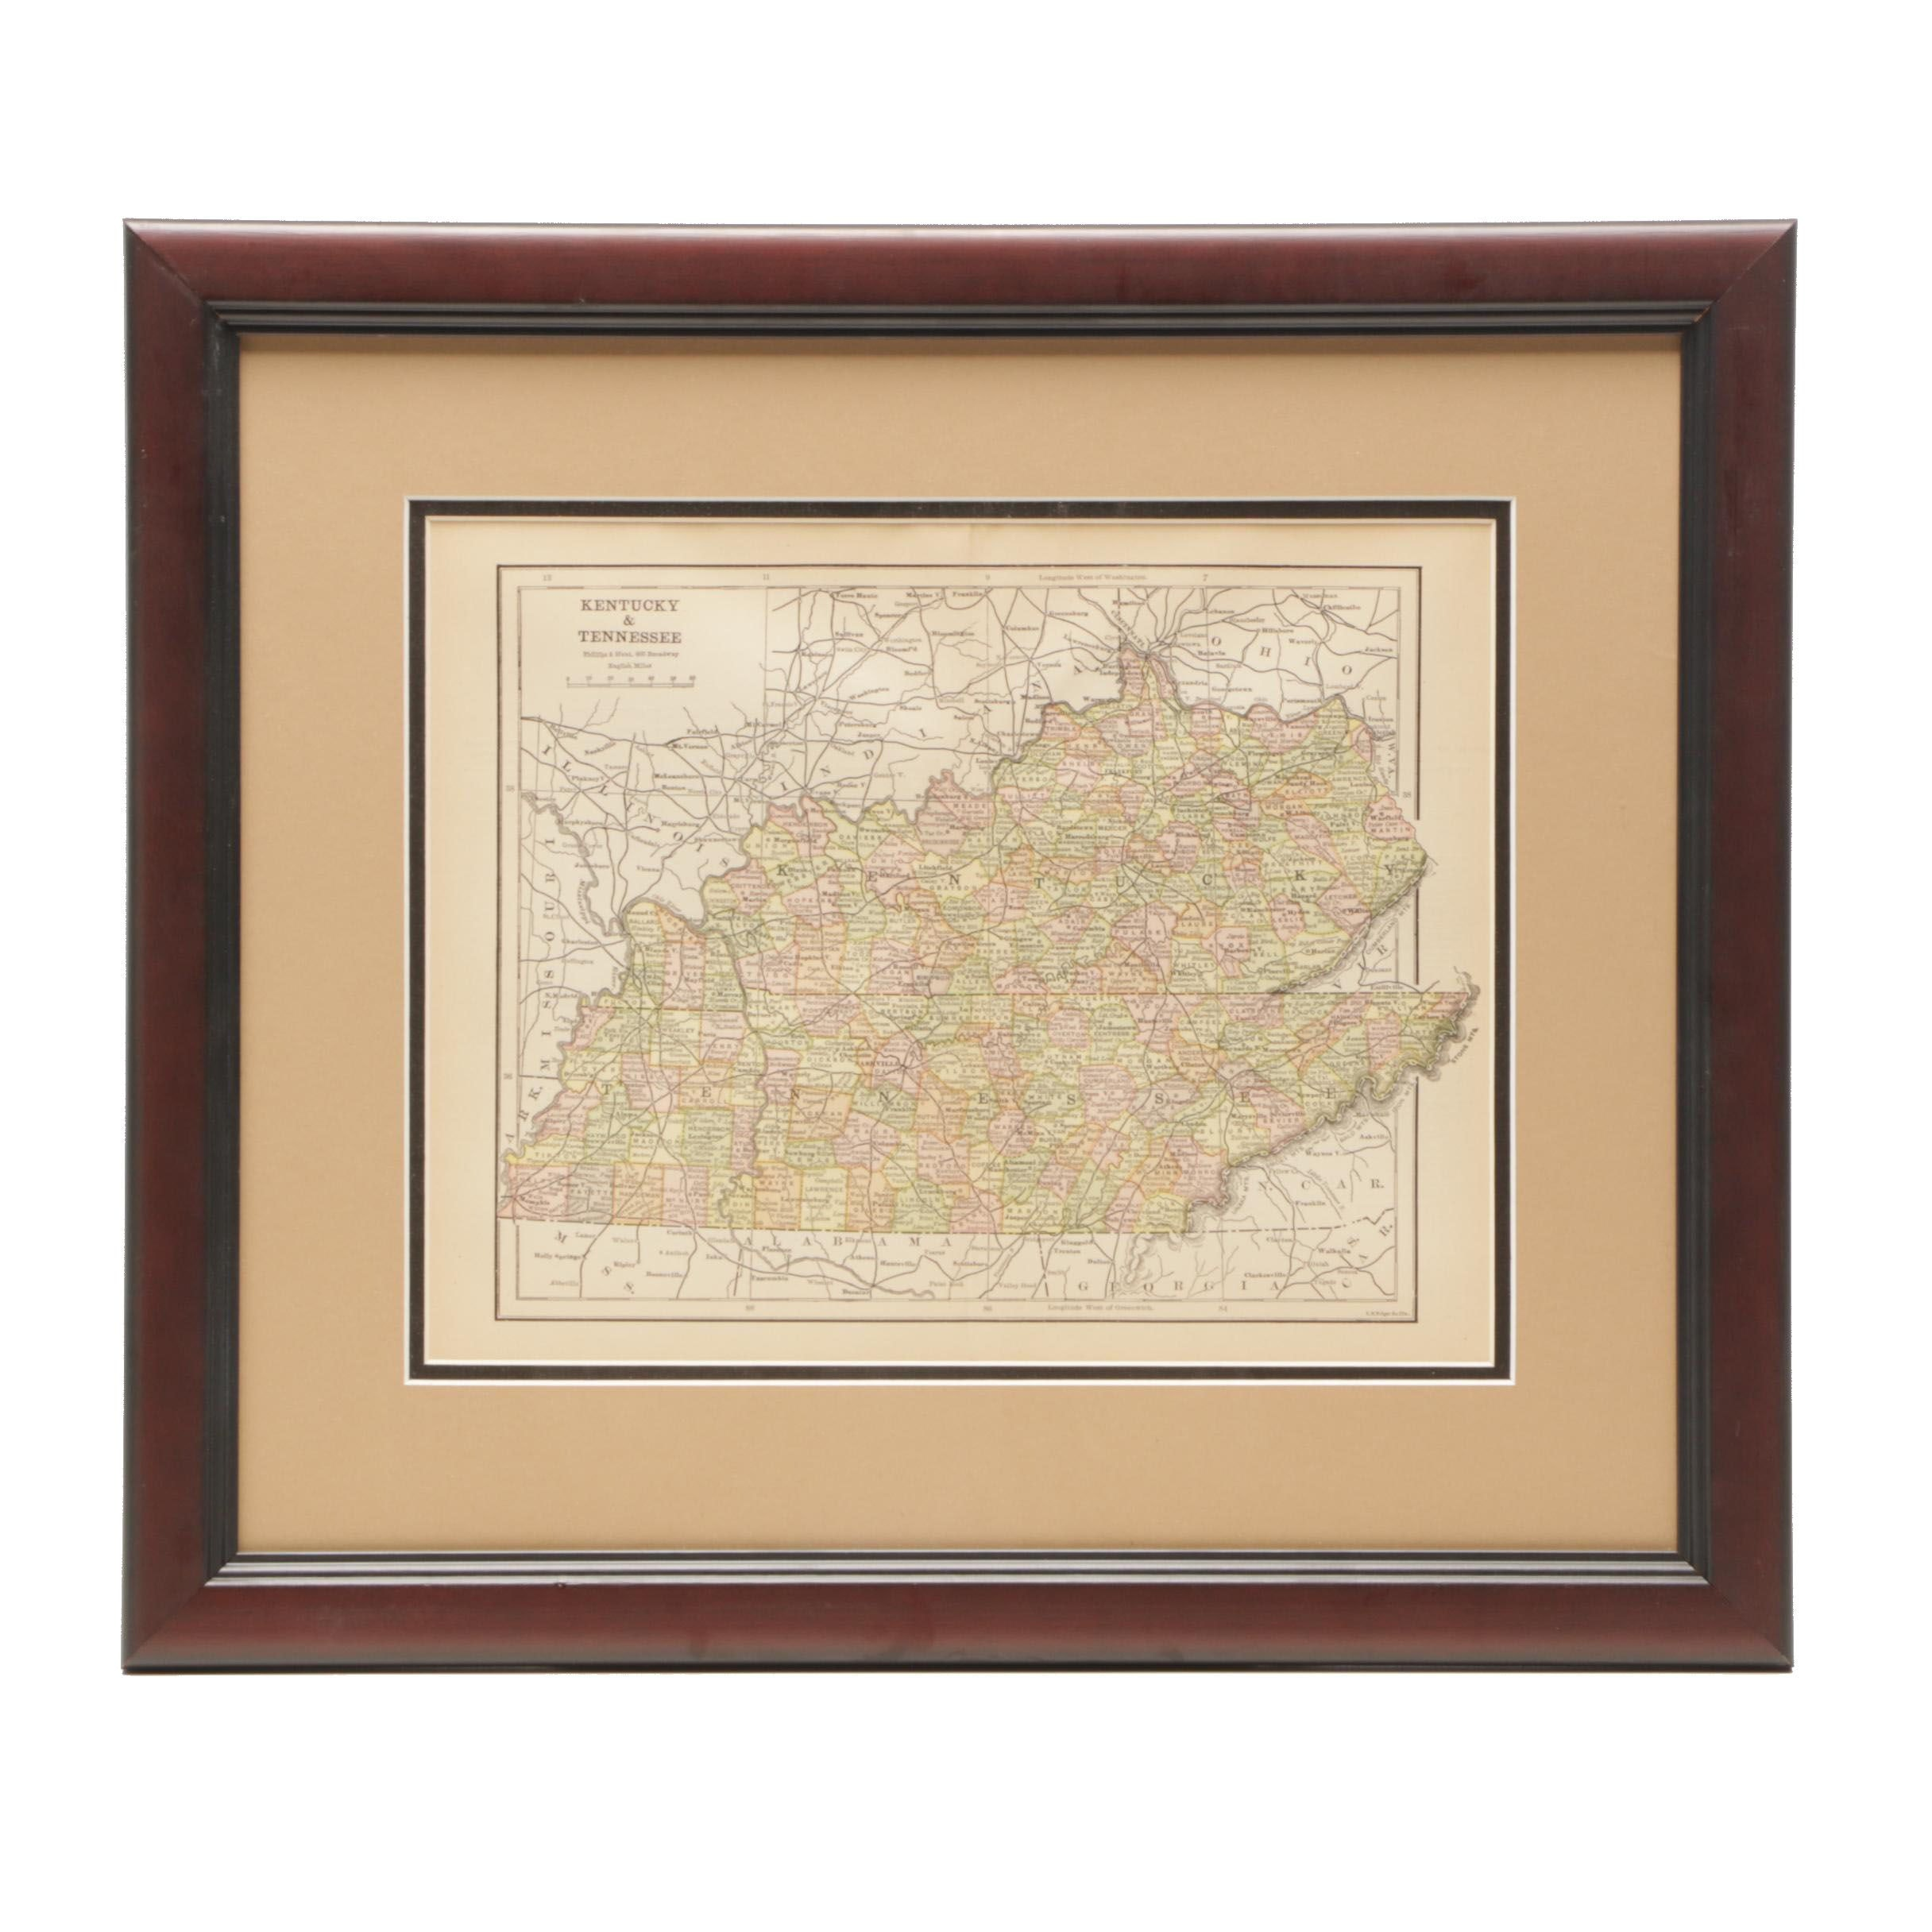 Antique Railroad Map of Kentucky and Tennessee